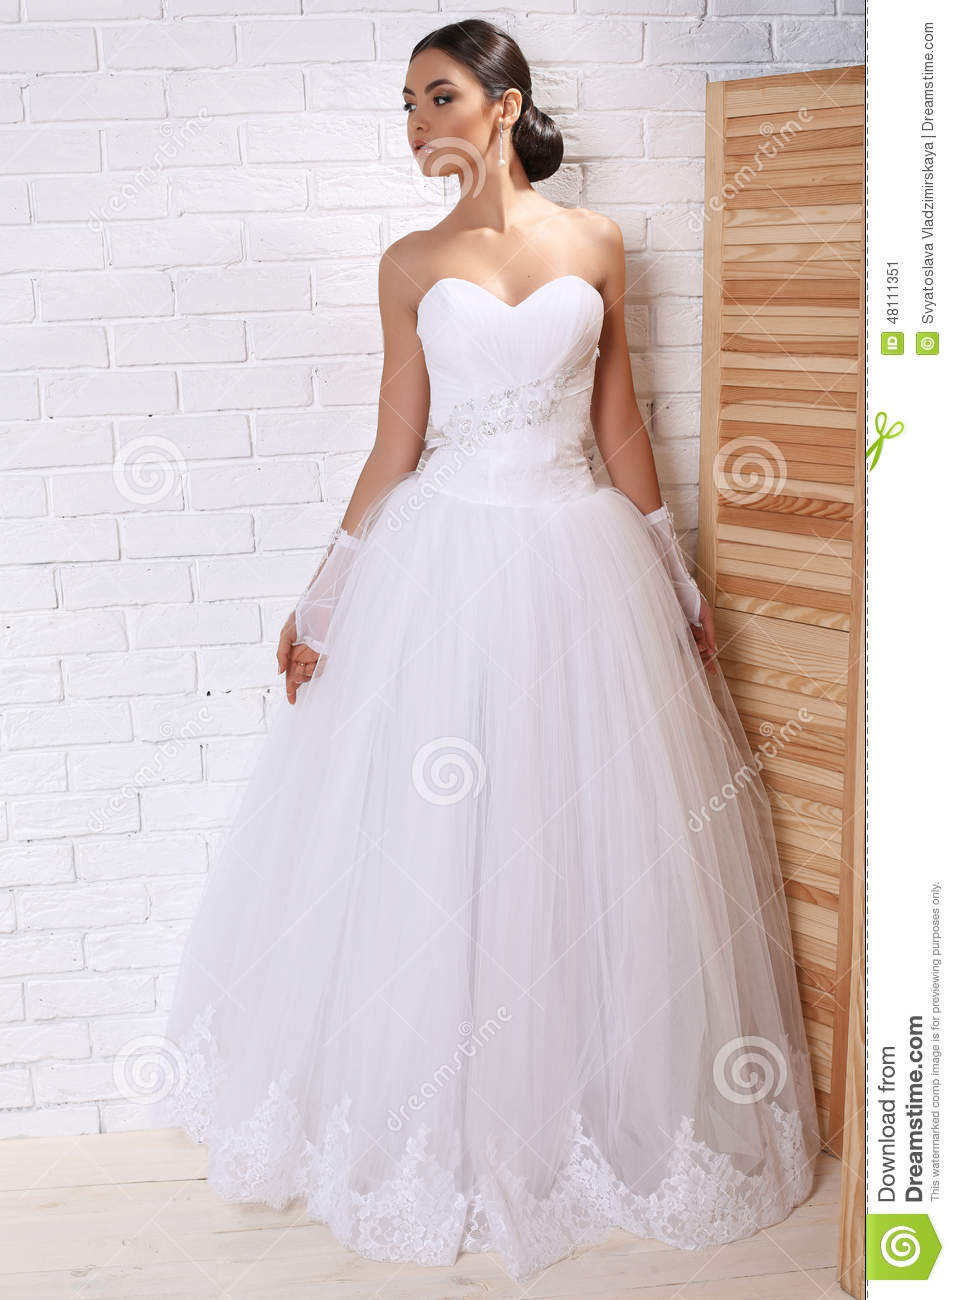 Beautiful Bride With Dark Hair In Elegant Wedding Dress With ...